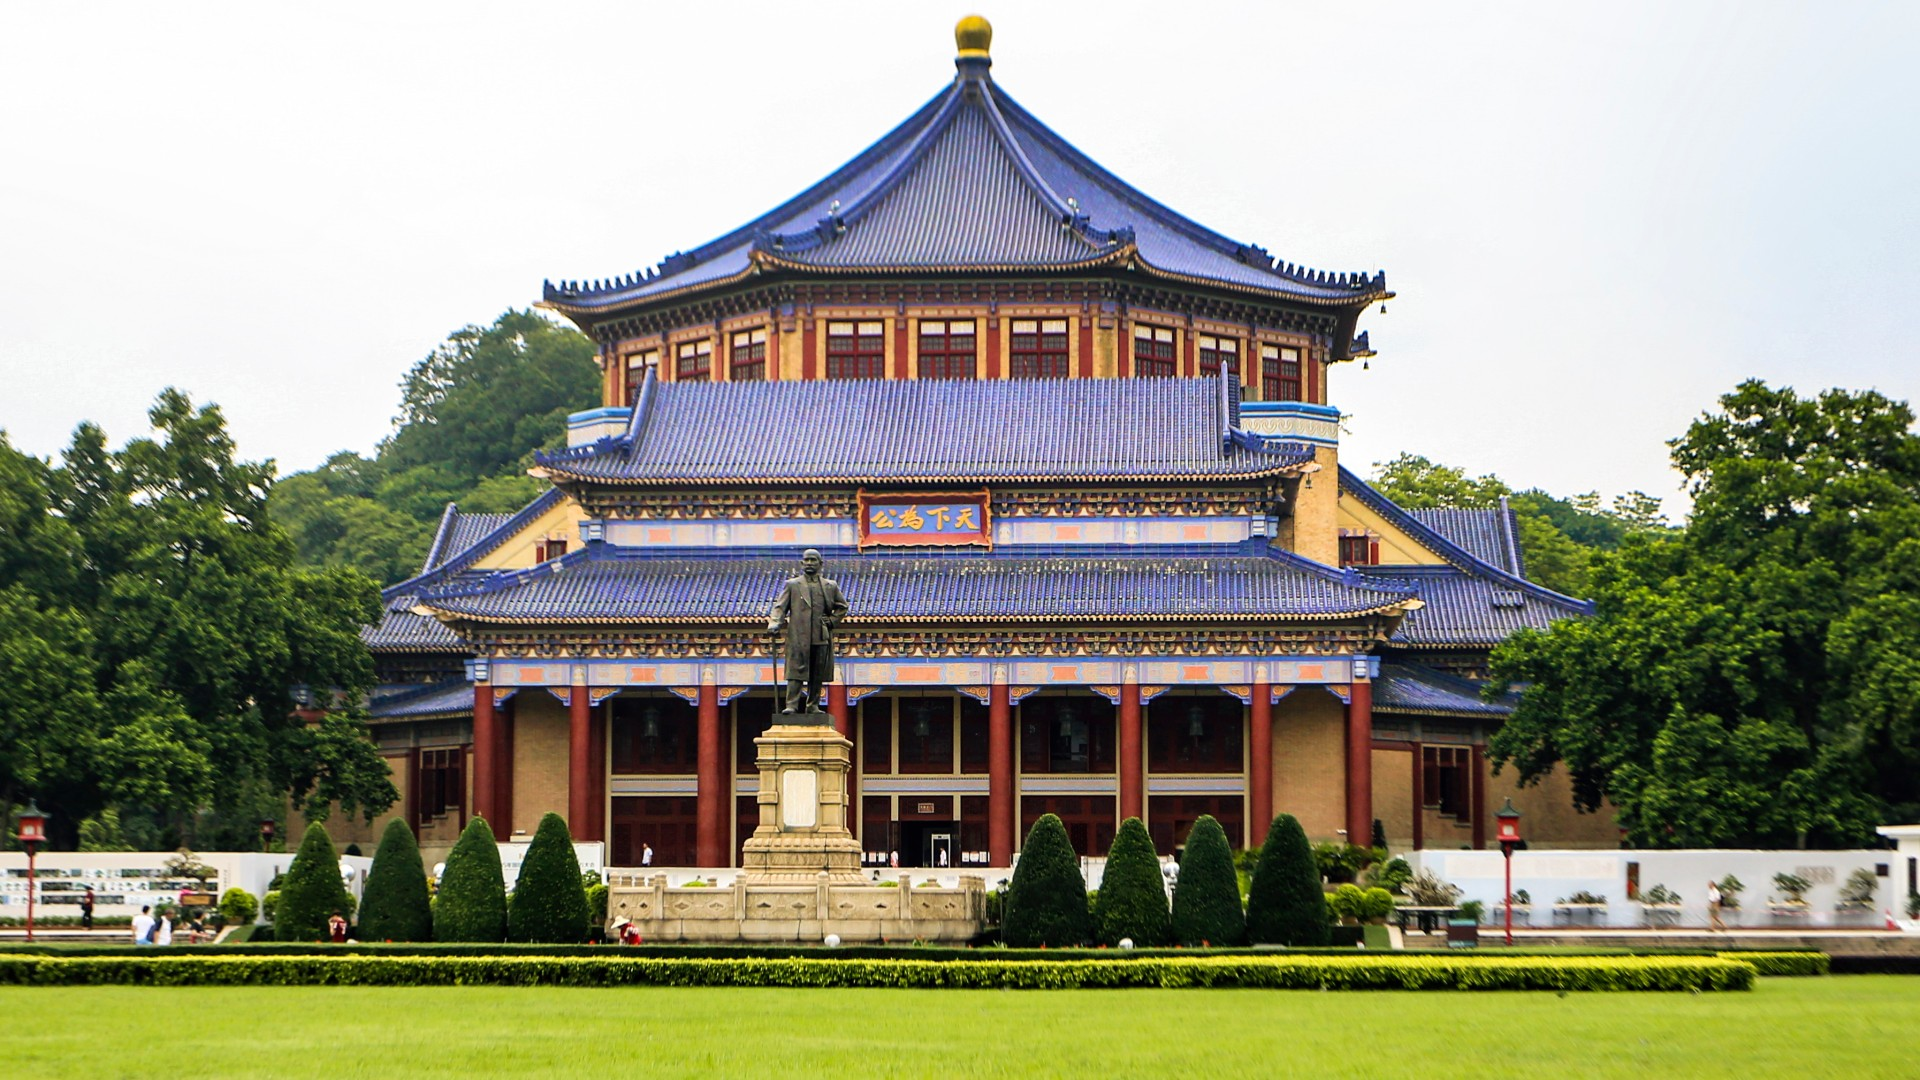 Photo of exterior of Sun Yat Sen Memorial Hall in Guangzhou, China